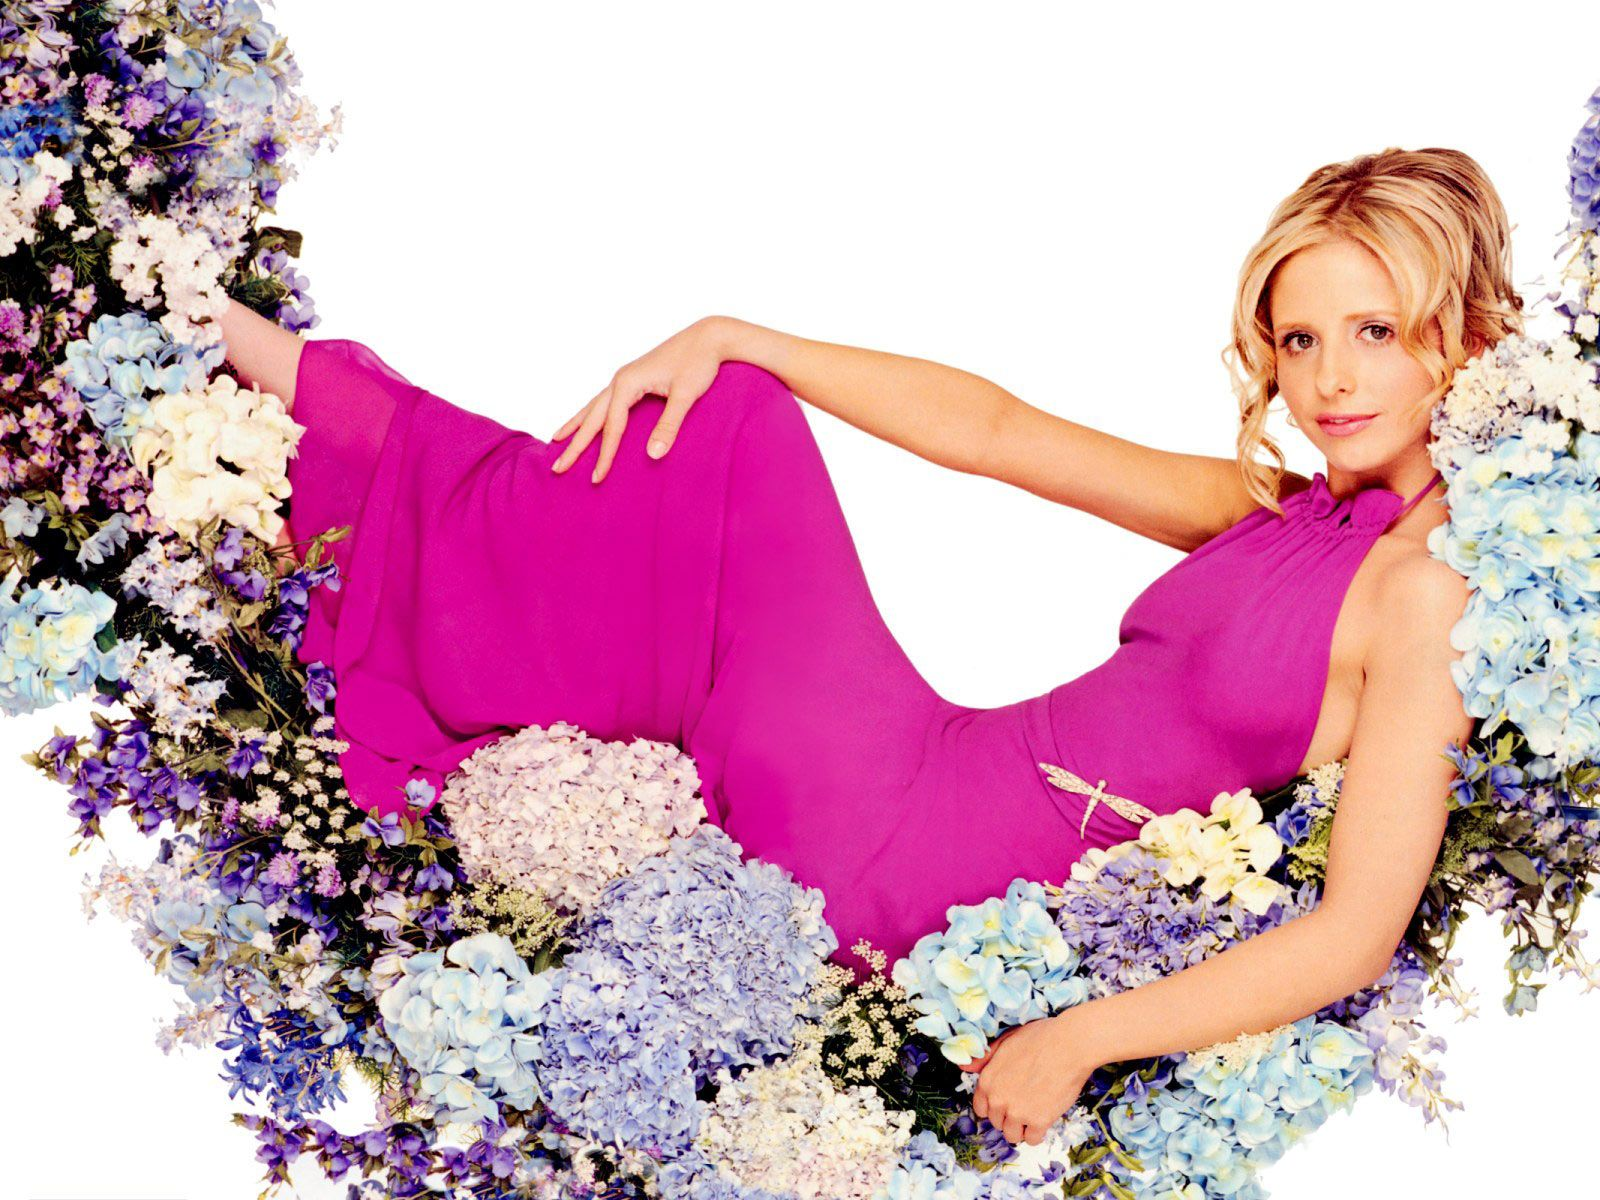 Sarah Michelle Gellar Wallpaper and Background Image 1600x1200 1600x1200